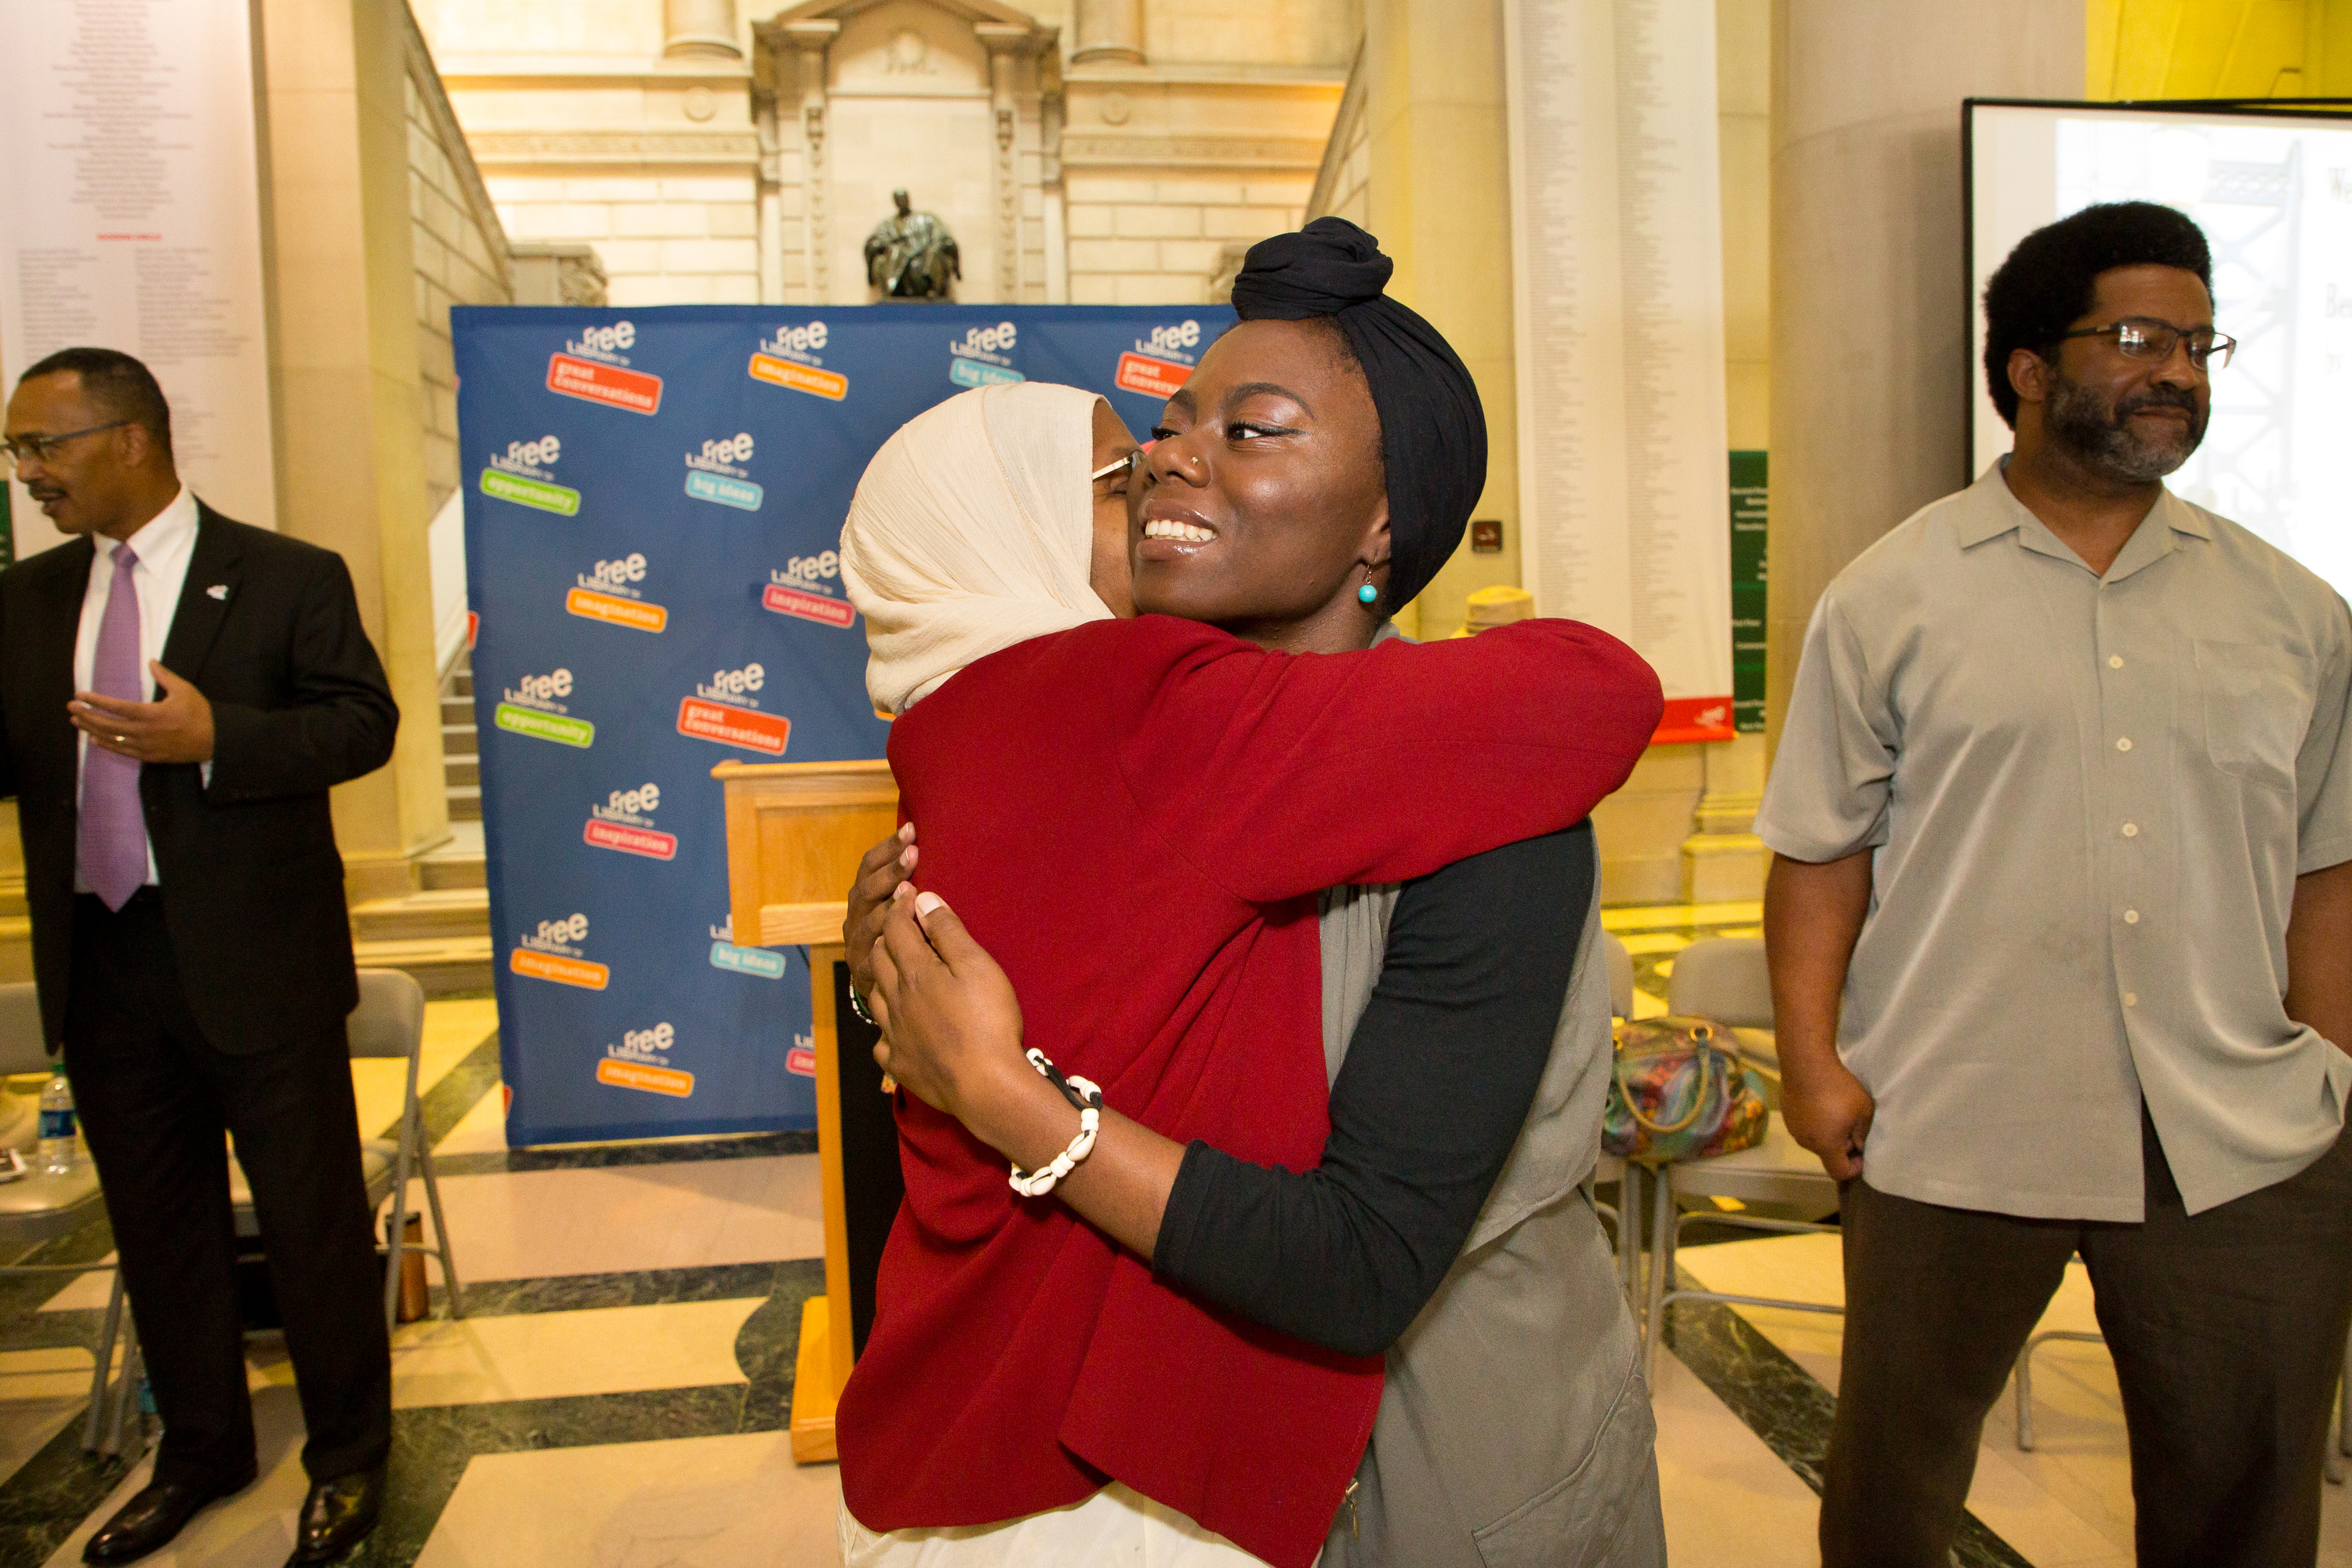 Aisha K Elmekki, left, hugs her grandaughter Husnaa Hashim, right, the new Youth Poet Laureate, after the ceremony at the Free Library, Thursday, Sept. 7, 2017.